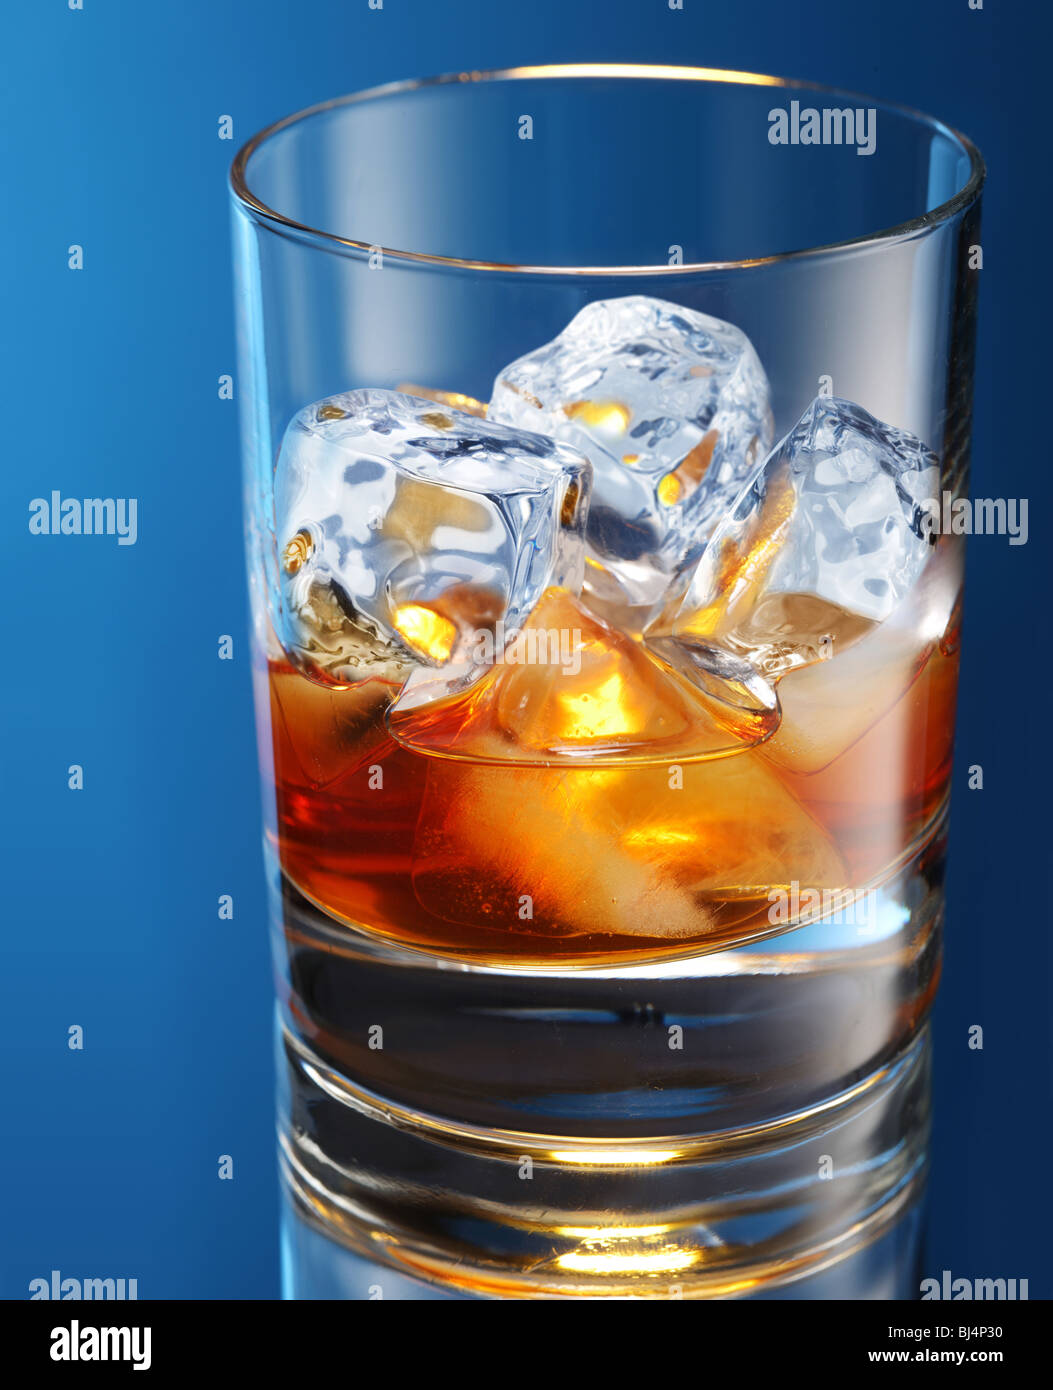 Glass of brandy with ice cubes isolated on a blue - Stock Image